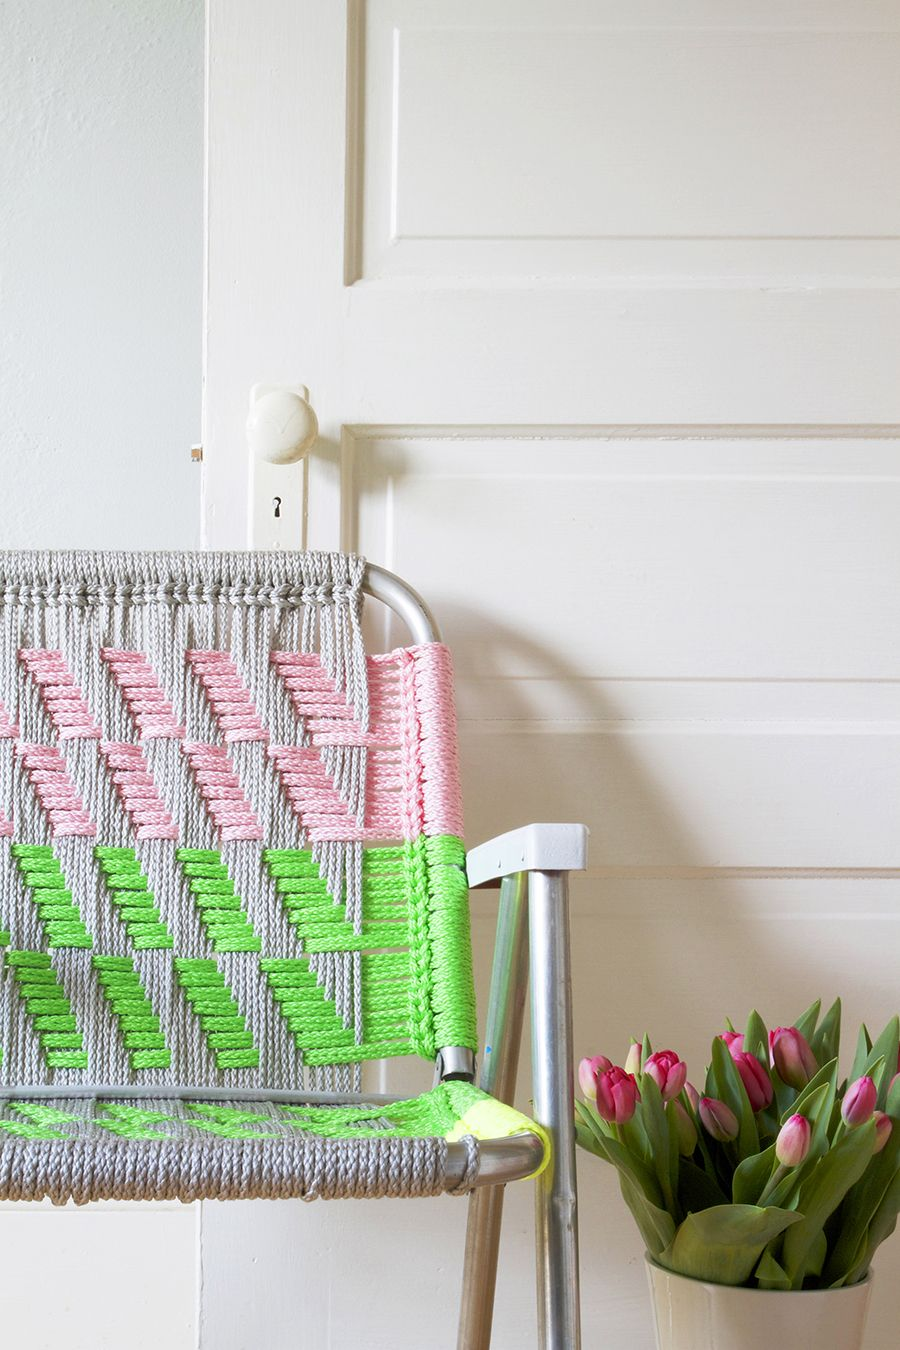 Woven Macrame Chair Tutorial Diy Decoration Chaises Macrame Et Brico Deco